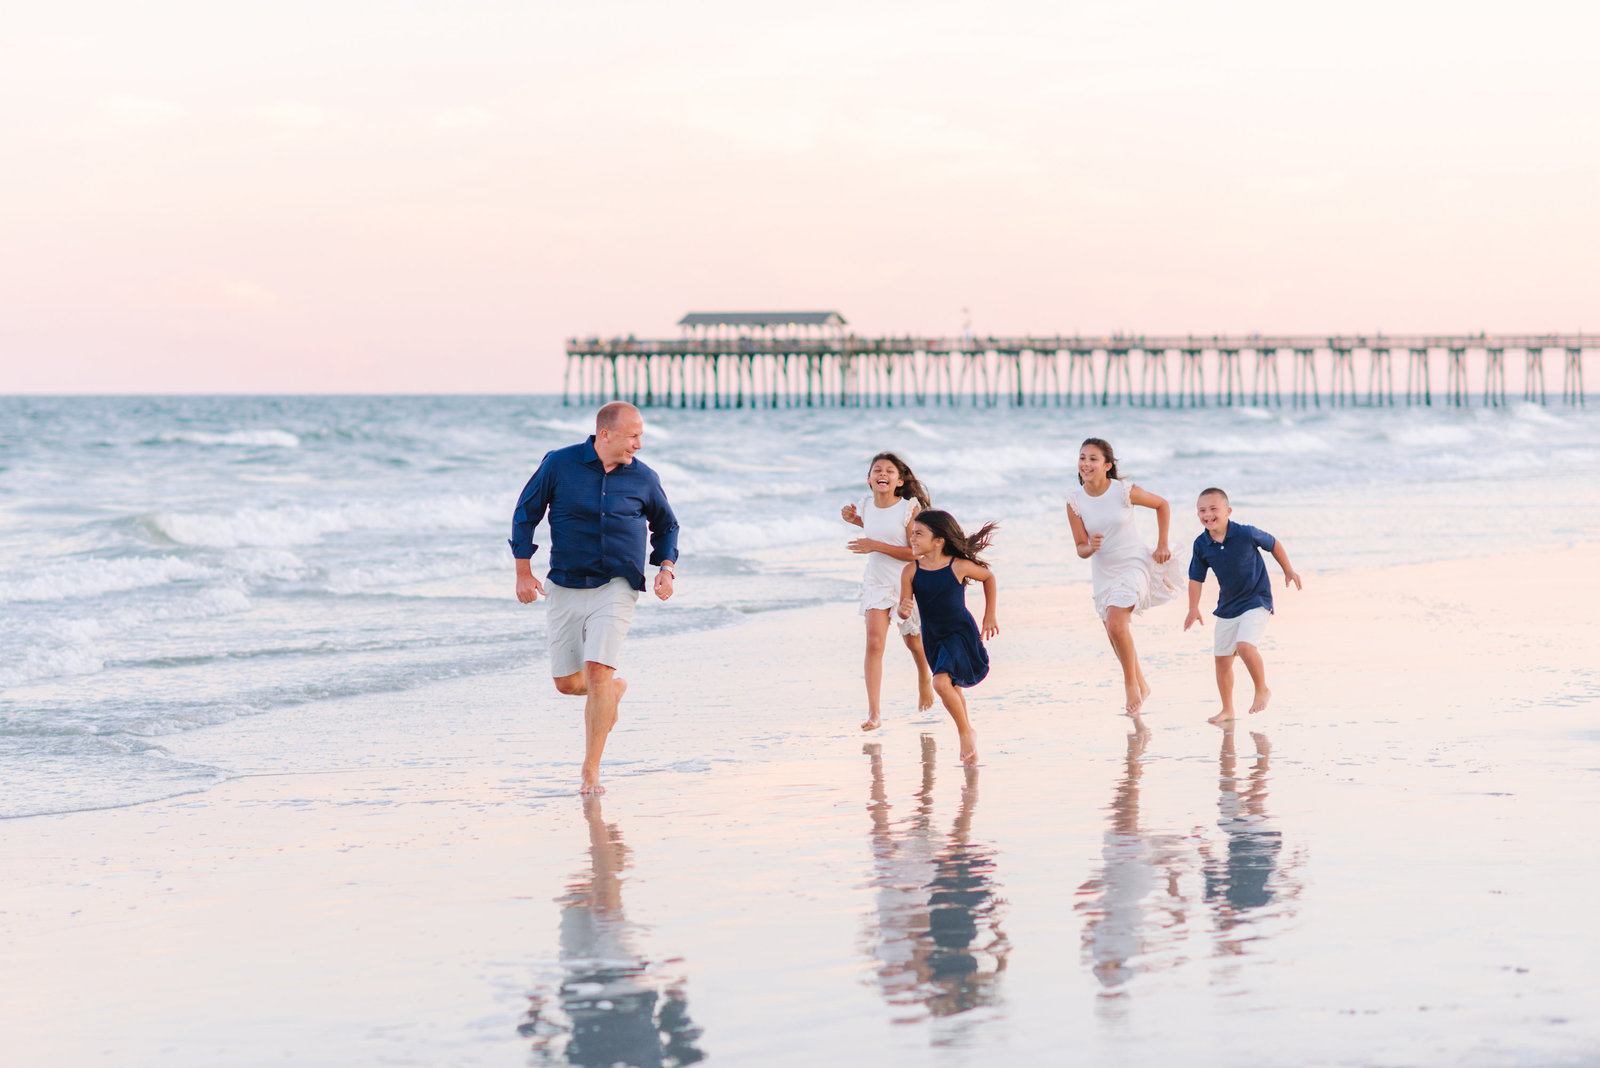 Father and children running on the water - family photography ideas on the beach in Myrtle Beach